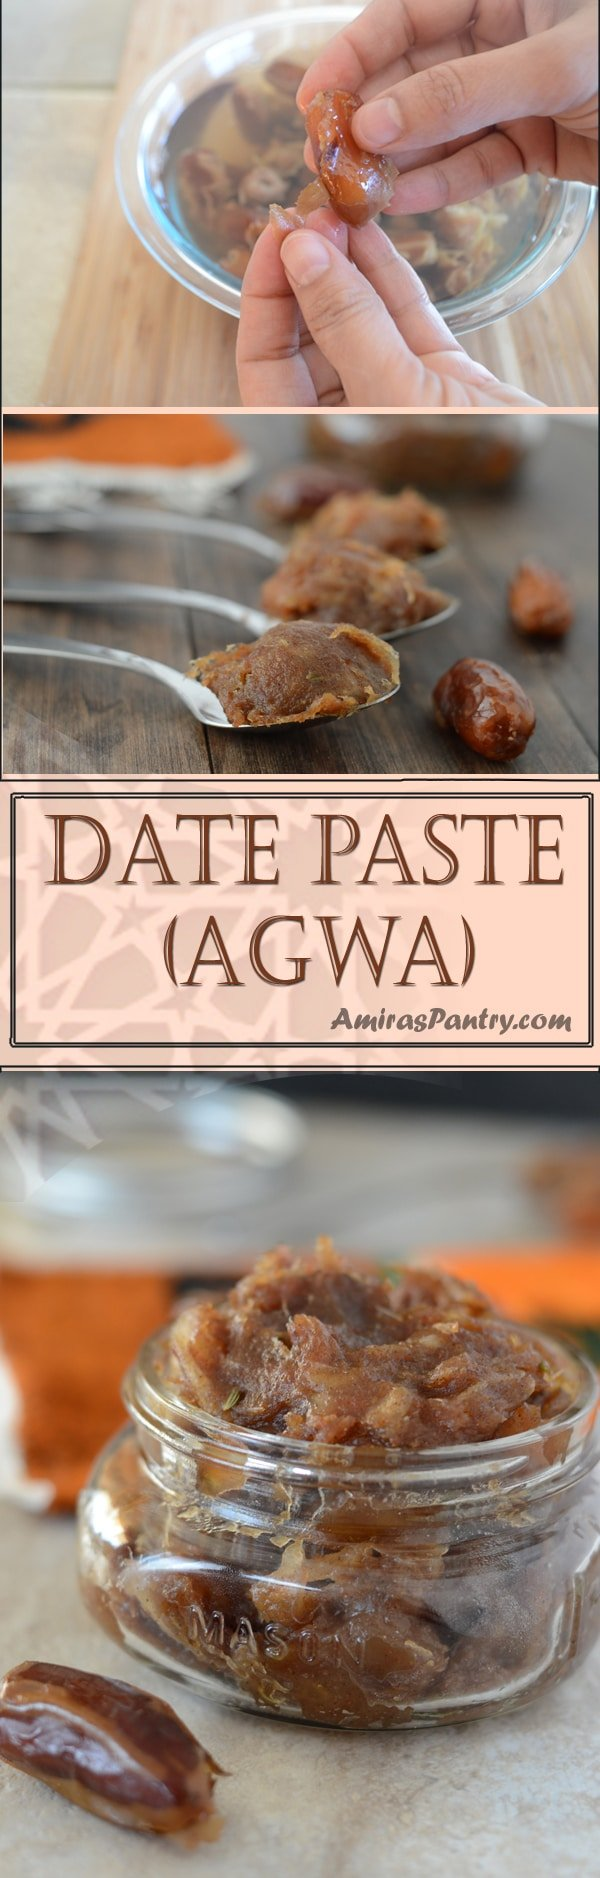 An infograph for Date Paste recipe